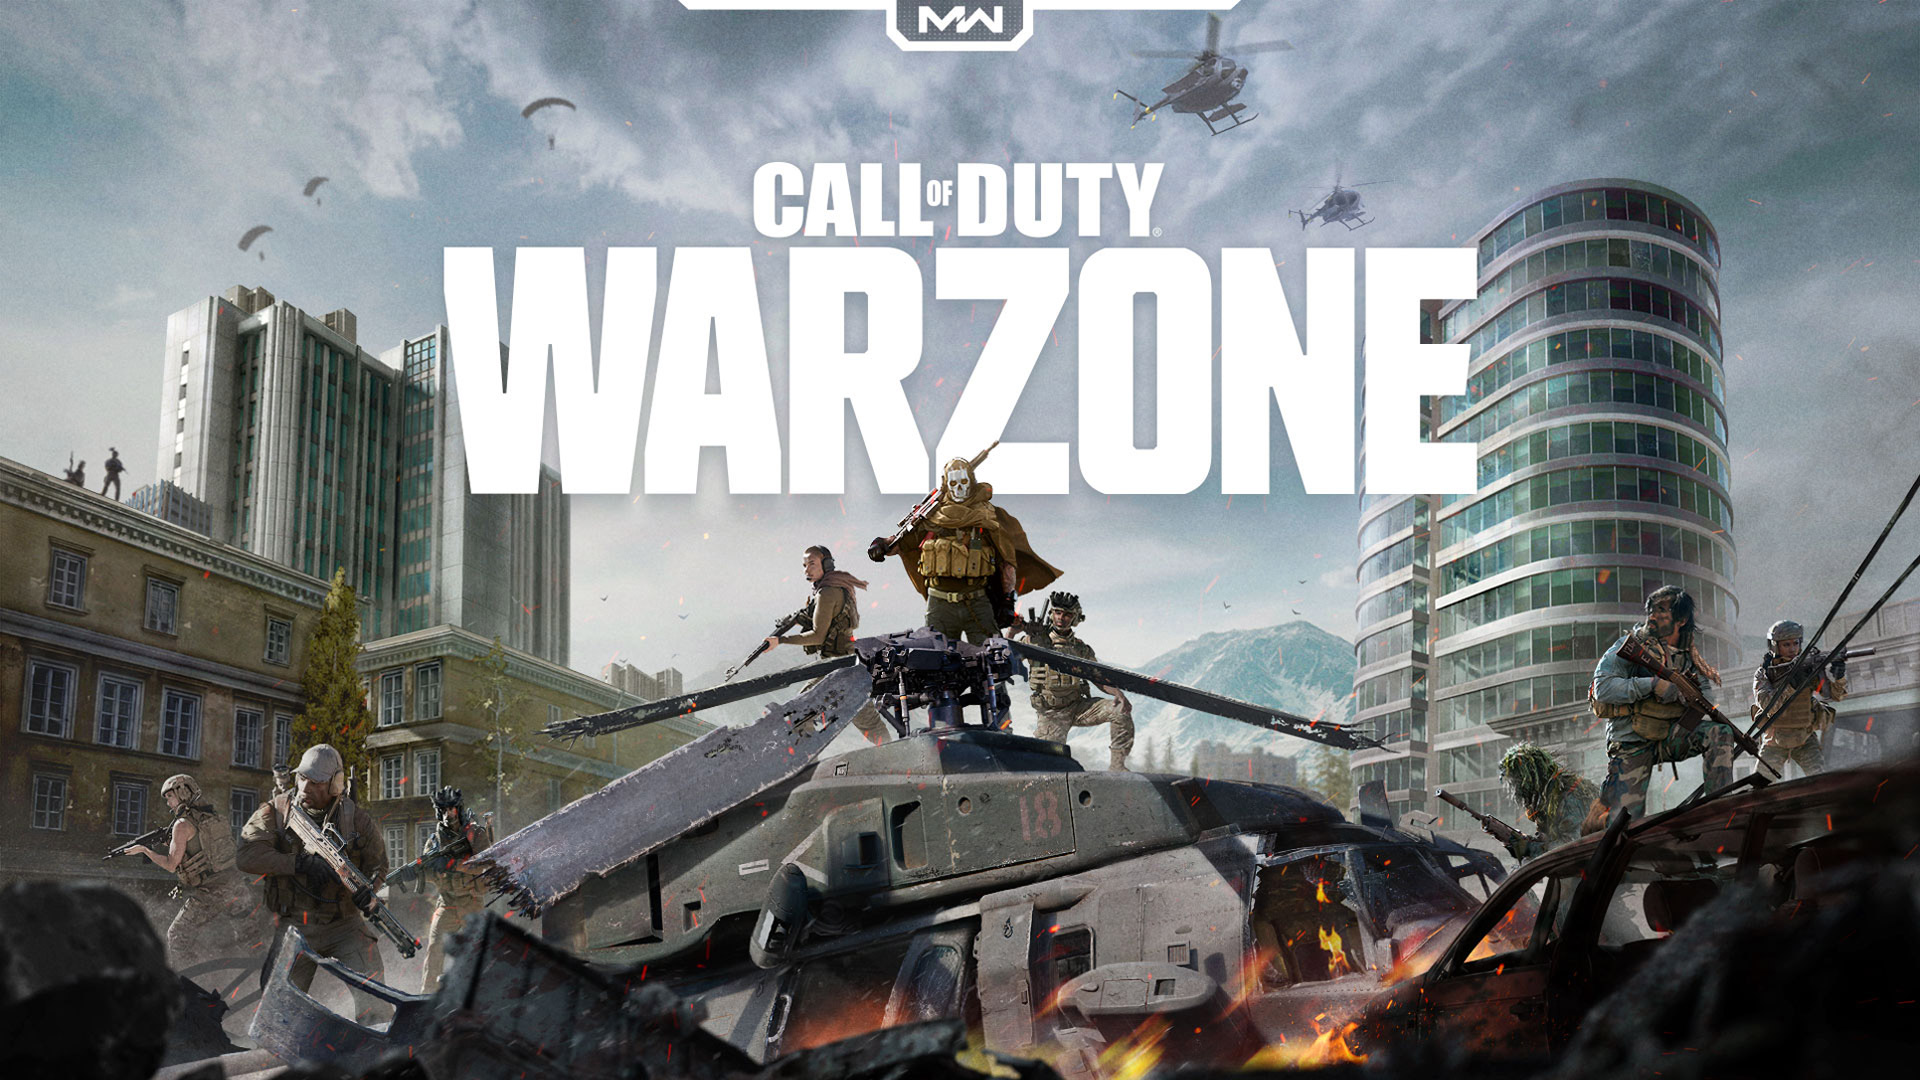 Free Call of Duty: Warzone Wallpaper in 1920x1080